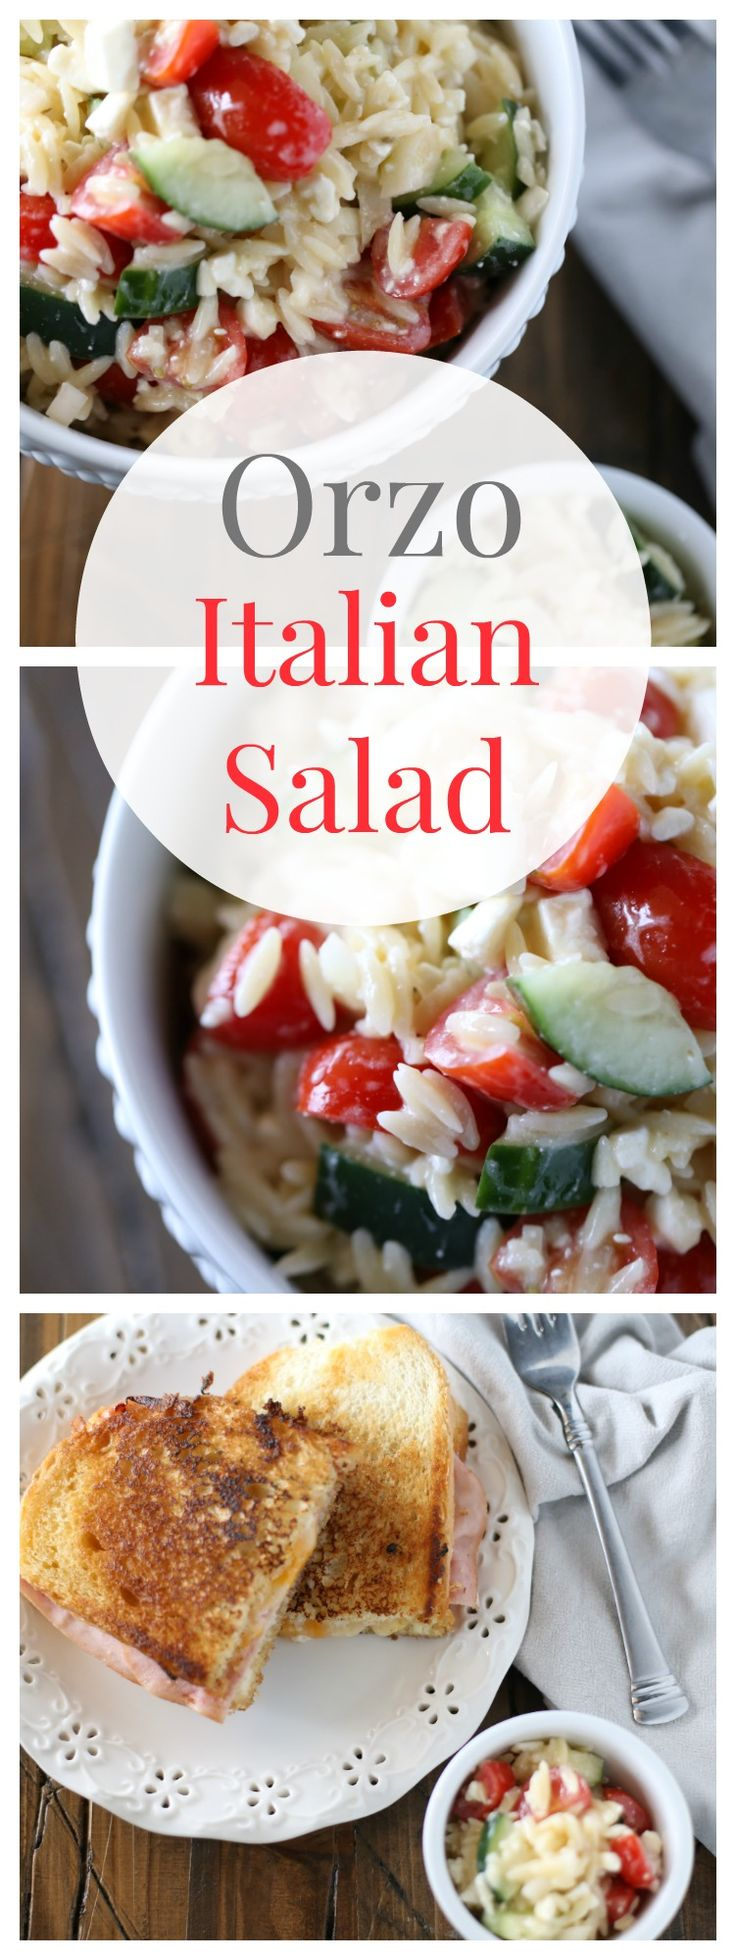 Find out how to make this Orzo Italian Salad